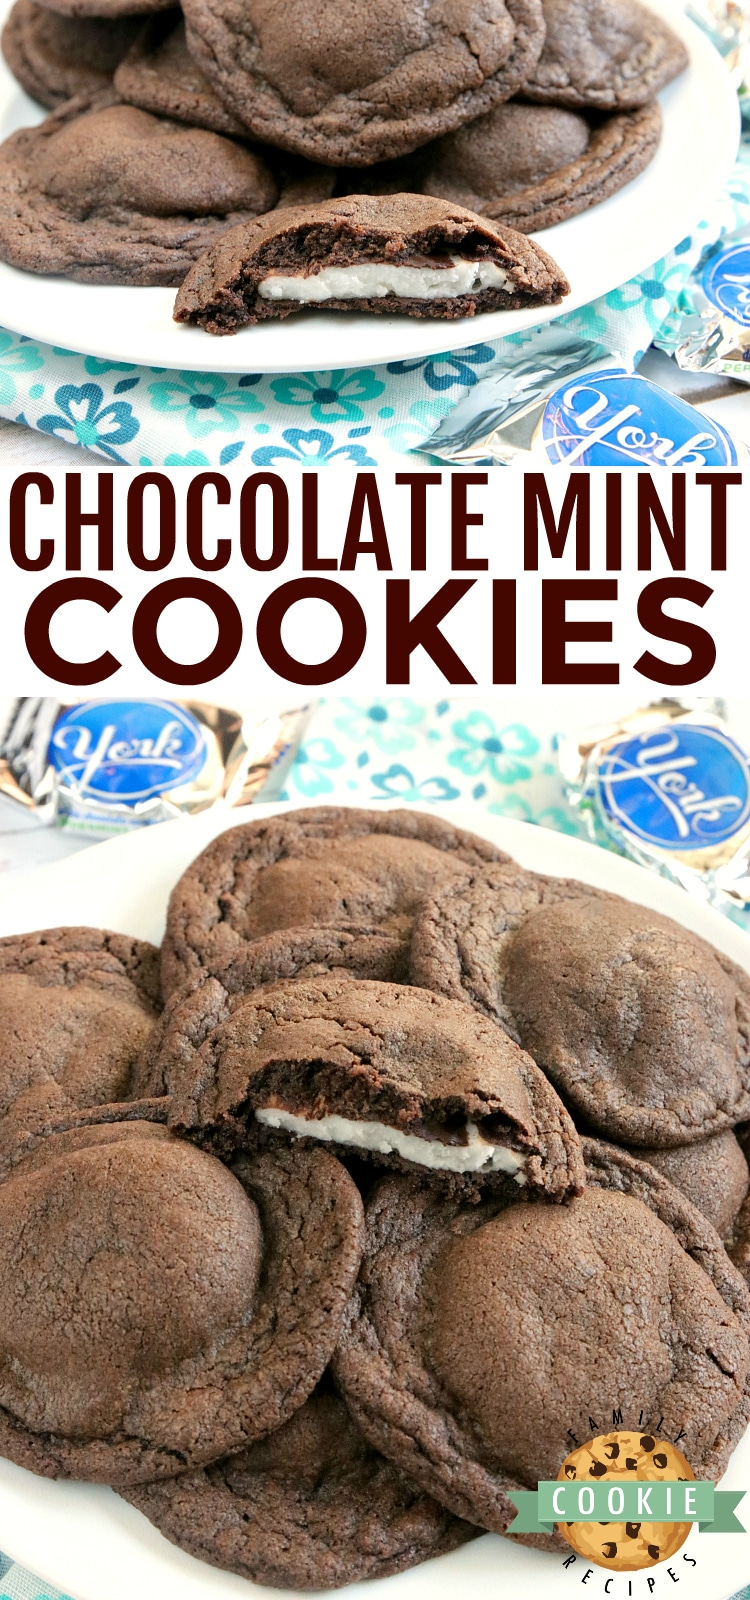 Chocolate Mint Cookies are soft and chewy chocolate cookies that have a York peppermint patty right in the middle. This easy cookie recipe is the perfect balance of chocolate and mint! via @buttergirls